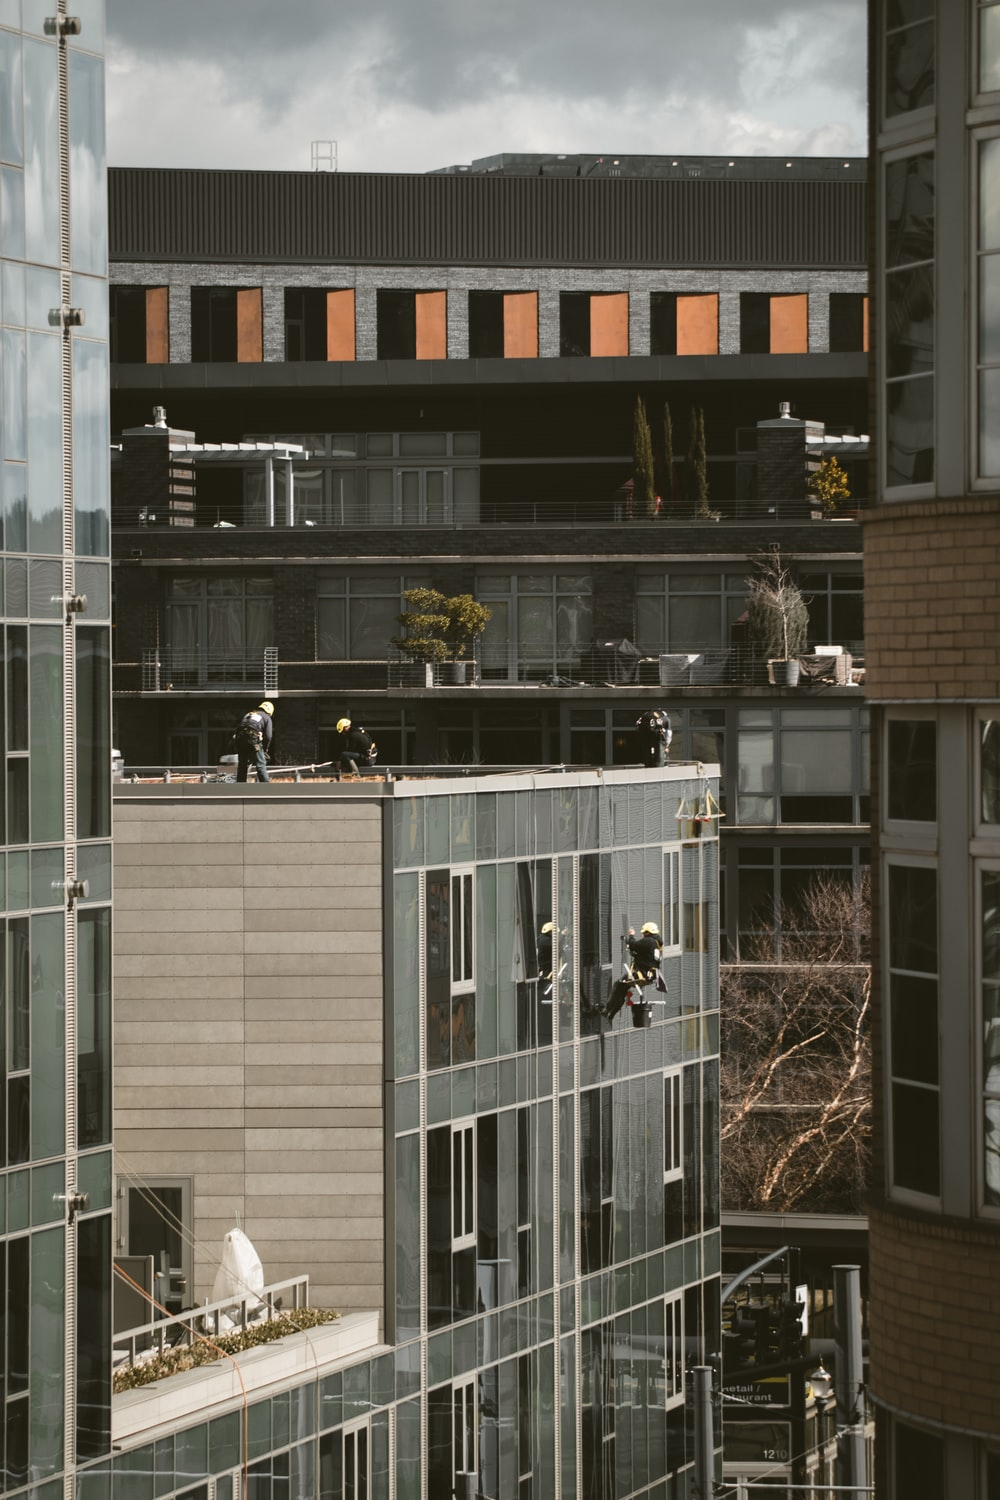 group of people working on the building